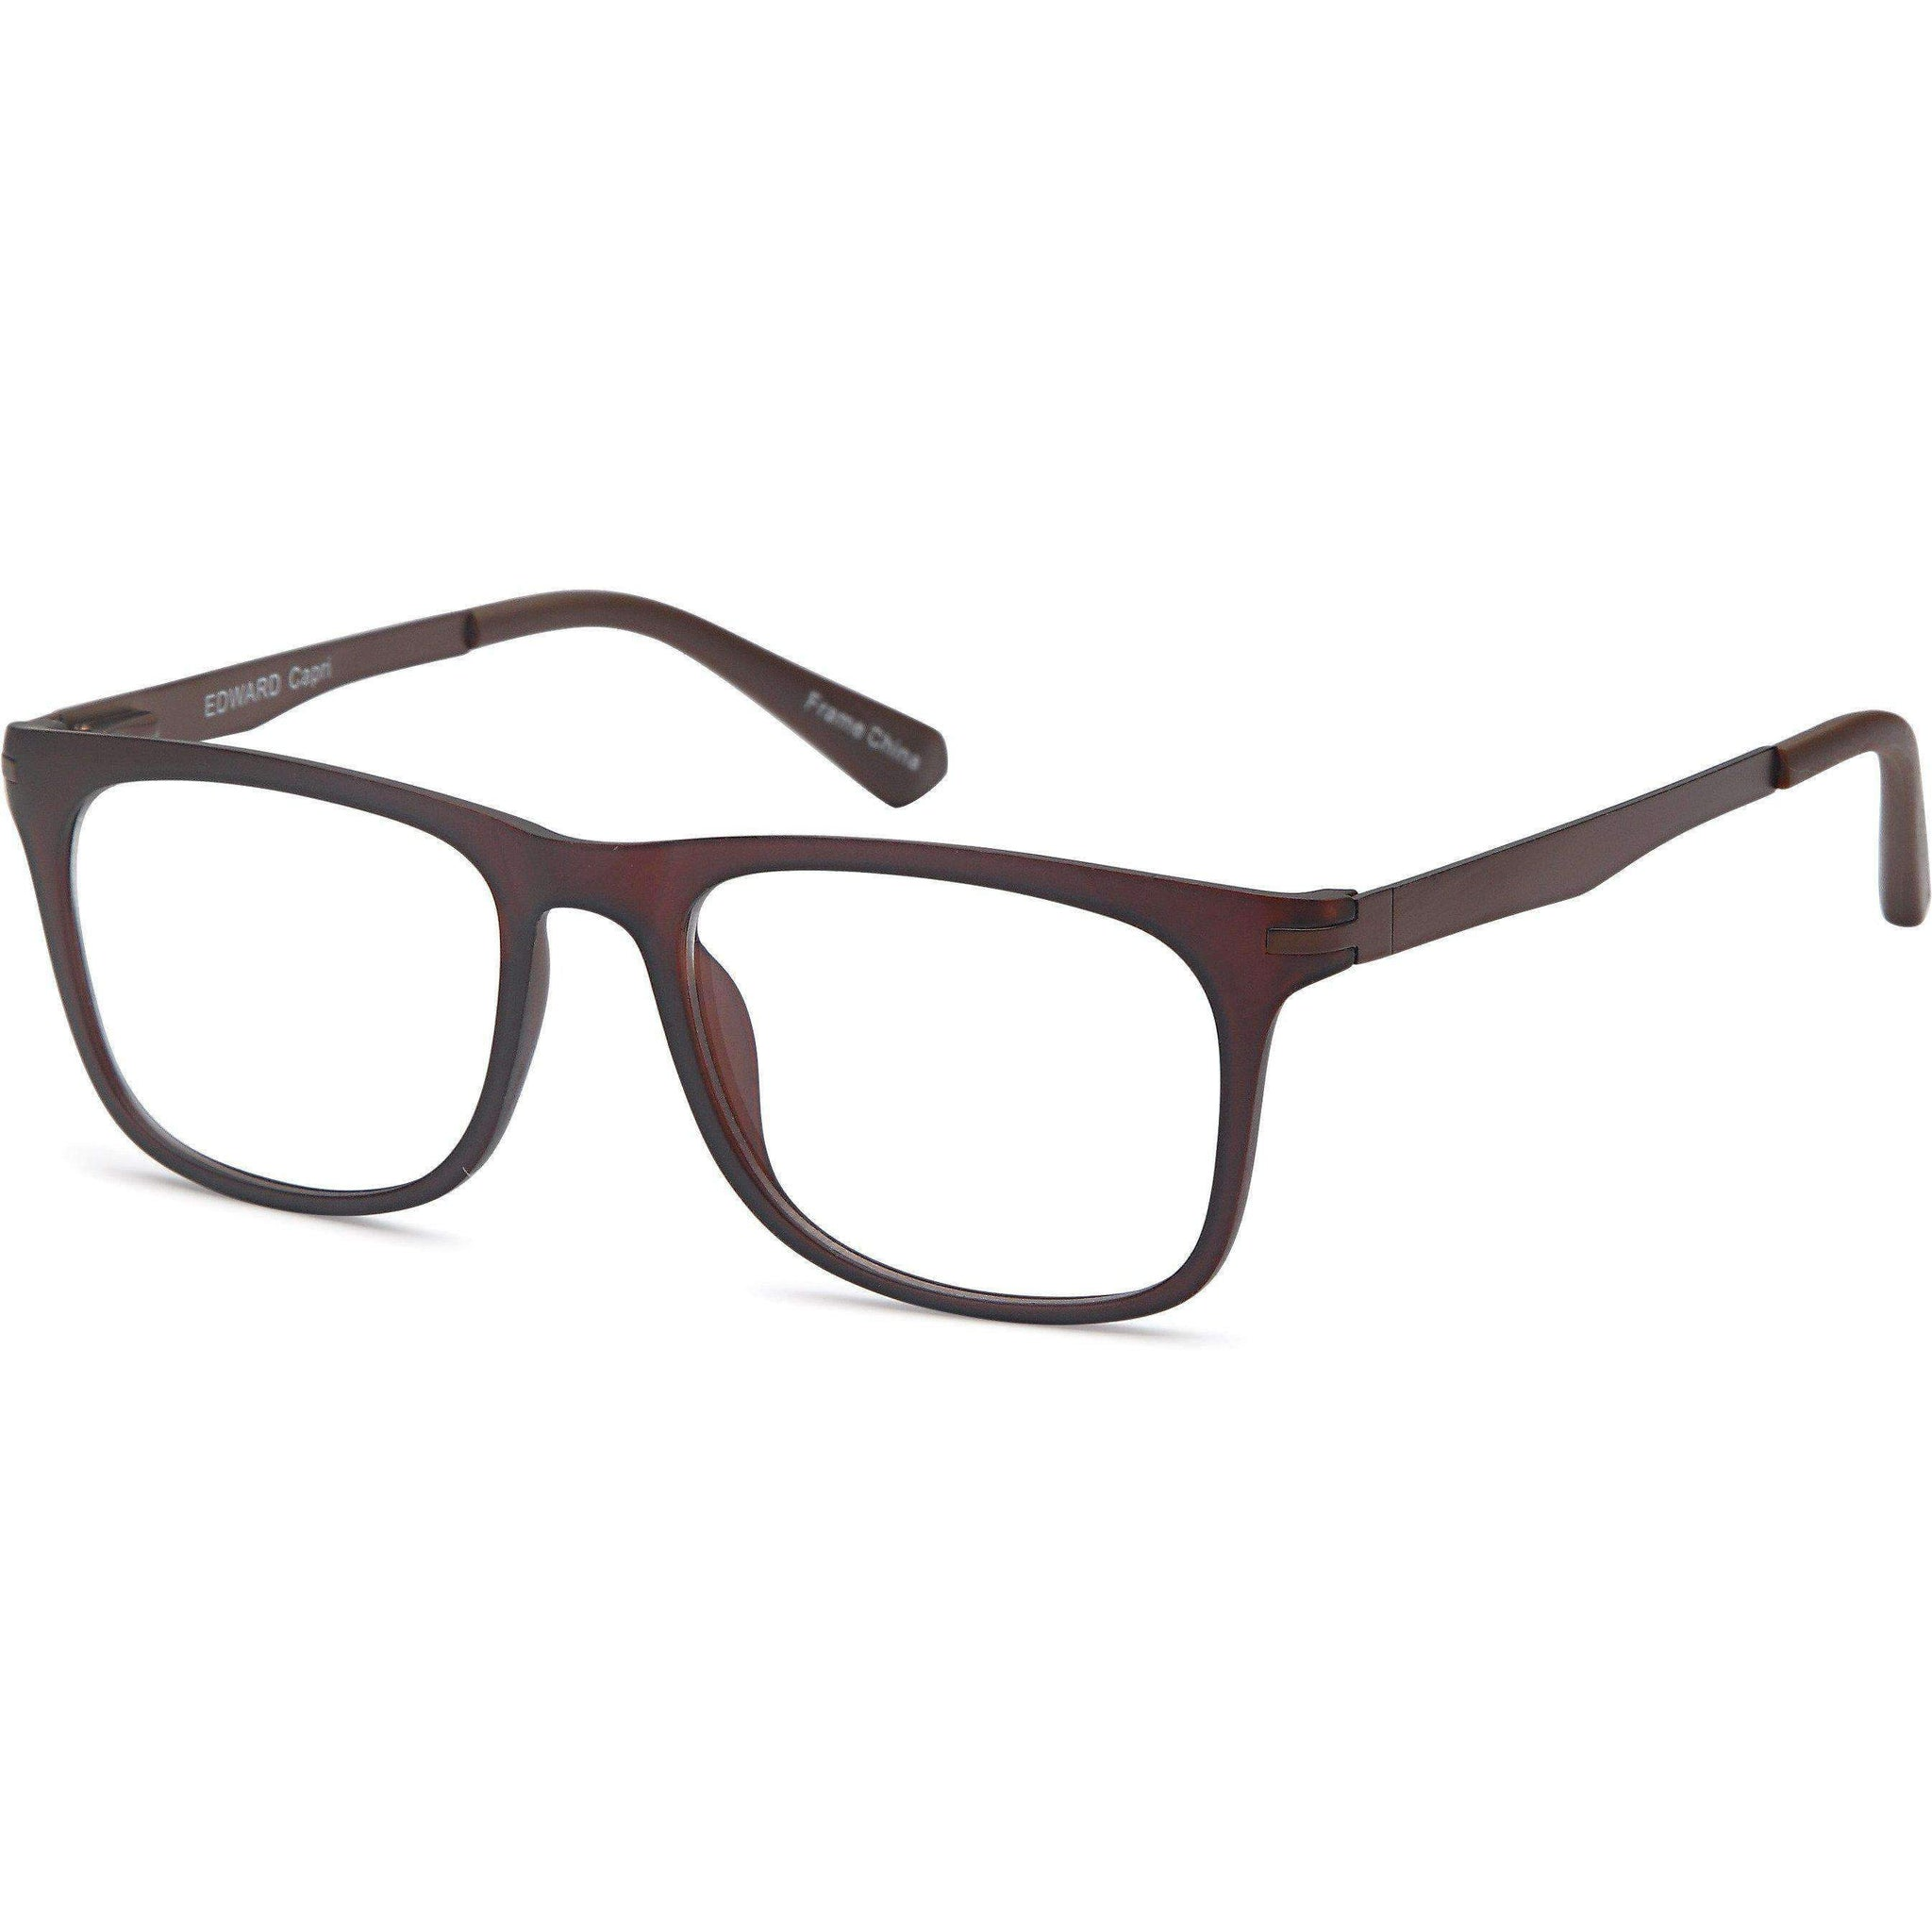 The Icons Prescription Glasses EDWARD Eyeglasses Frame